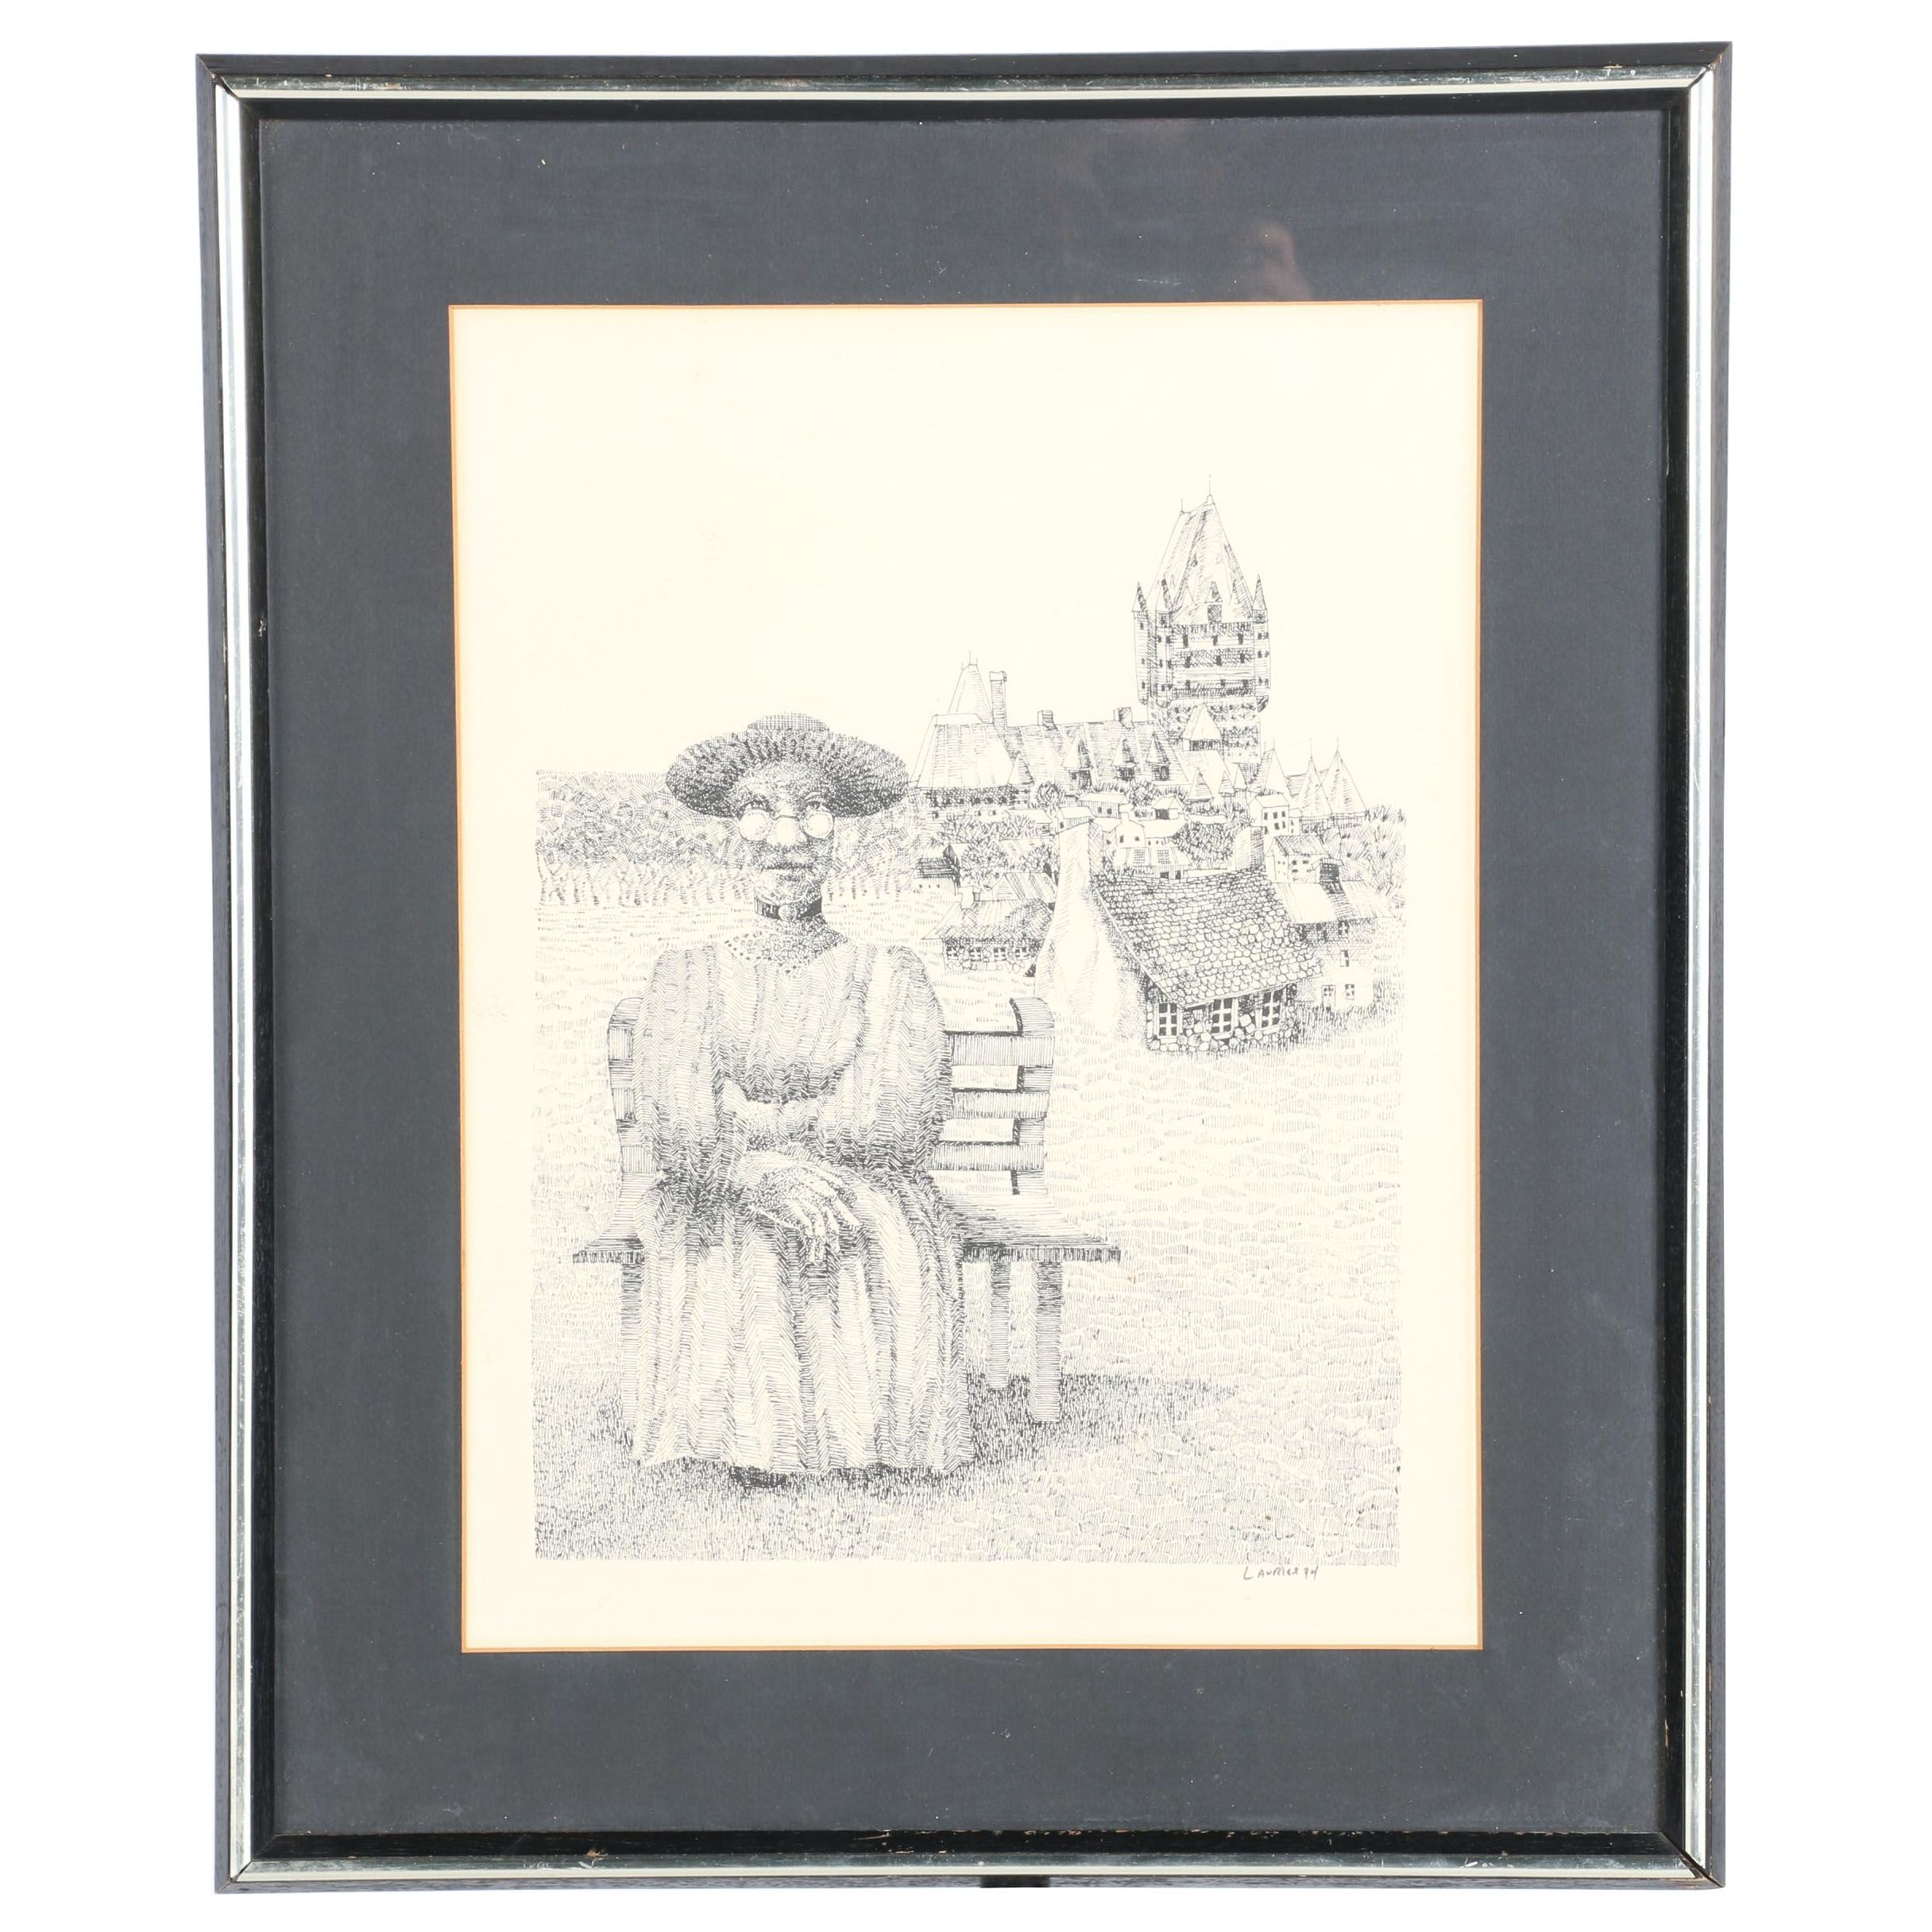 Laurier Signed Lithograph on Paper of an Ink Drawing of a Woman